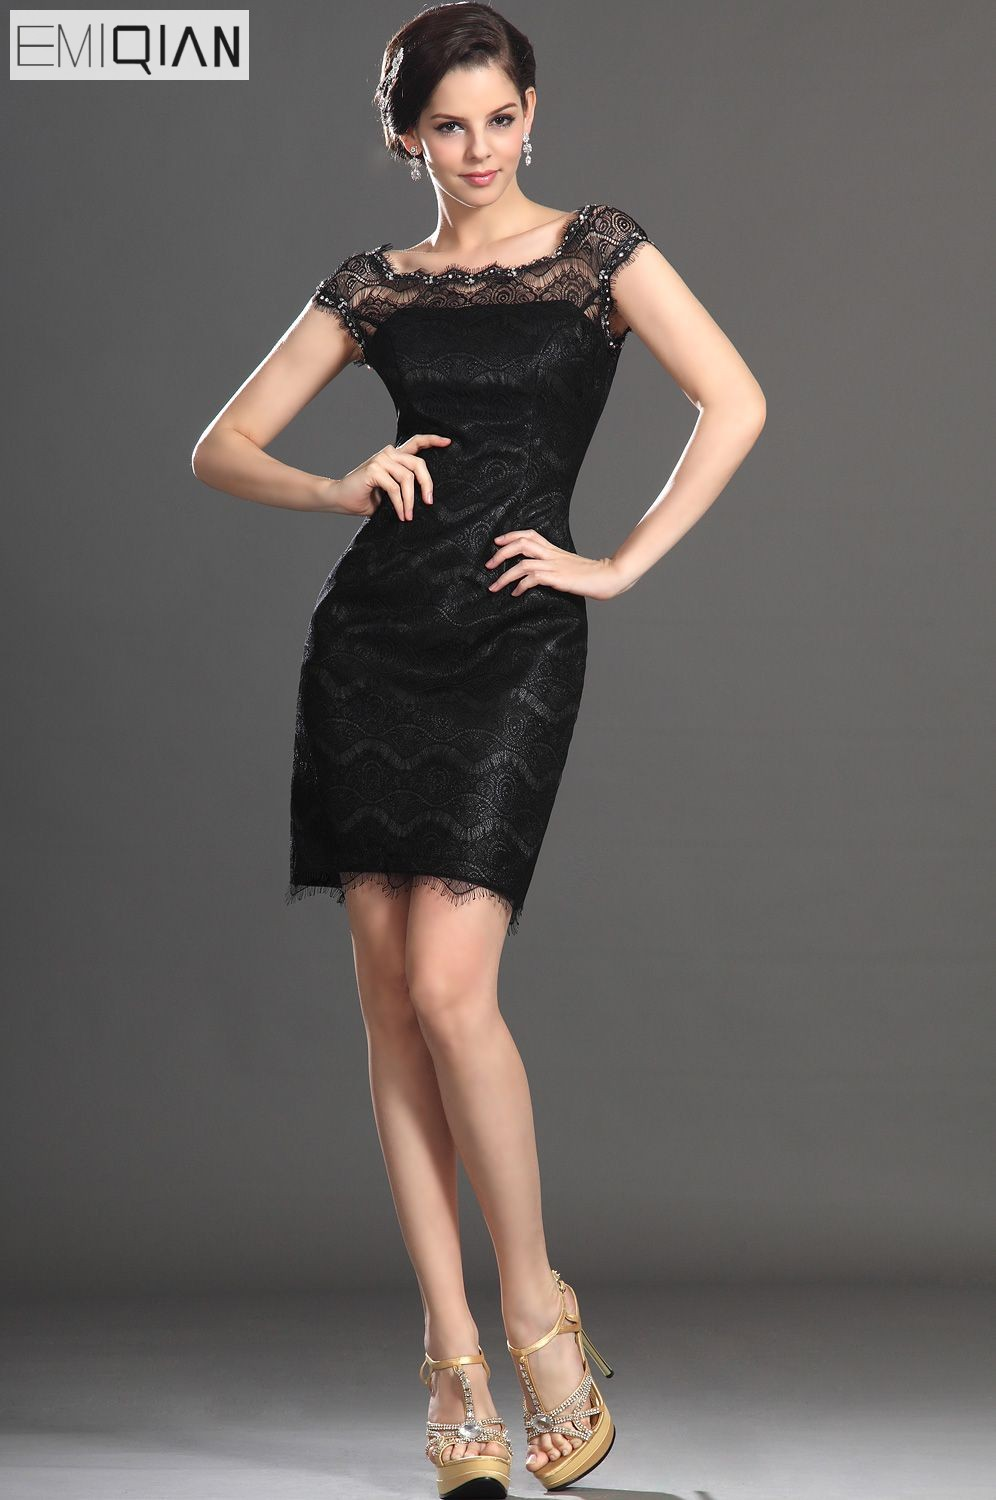 6a3ed1d0723 Free Shipping New Fabulous Cap Sleeve Beaded On Neckline Little Black  Cocktail Dress